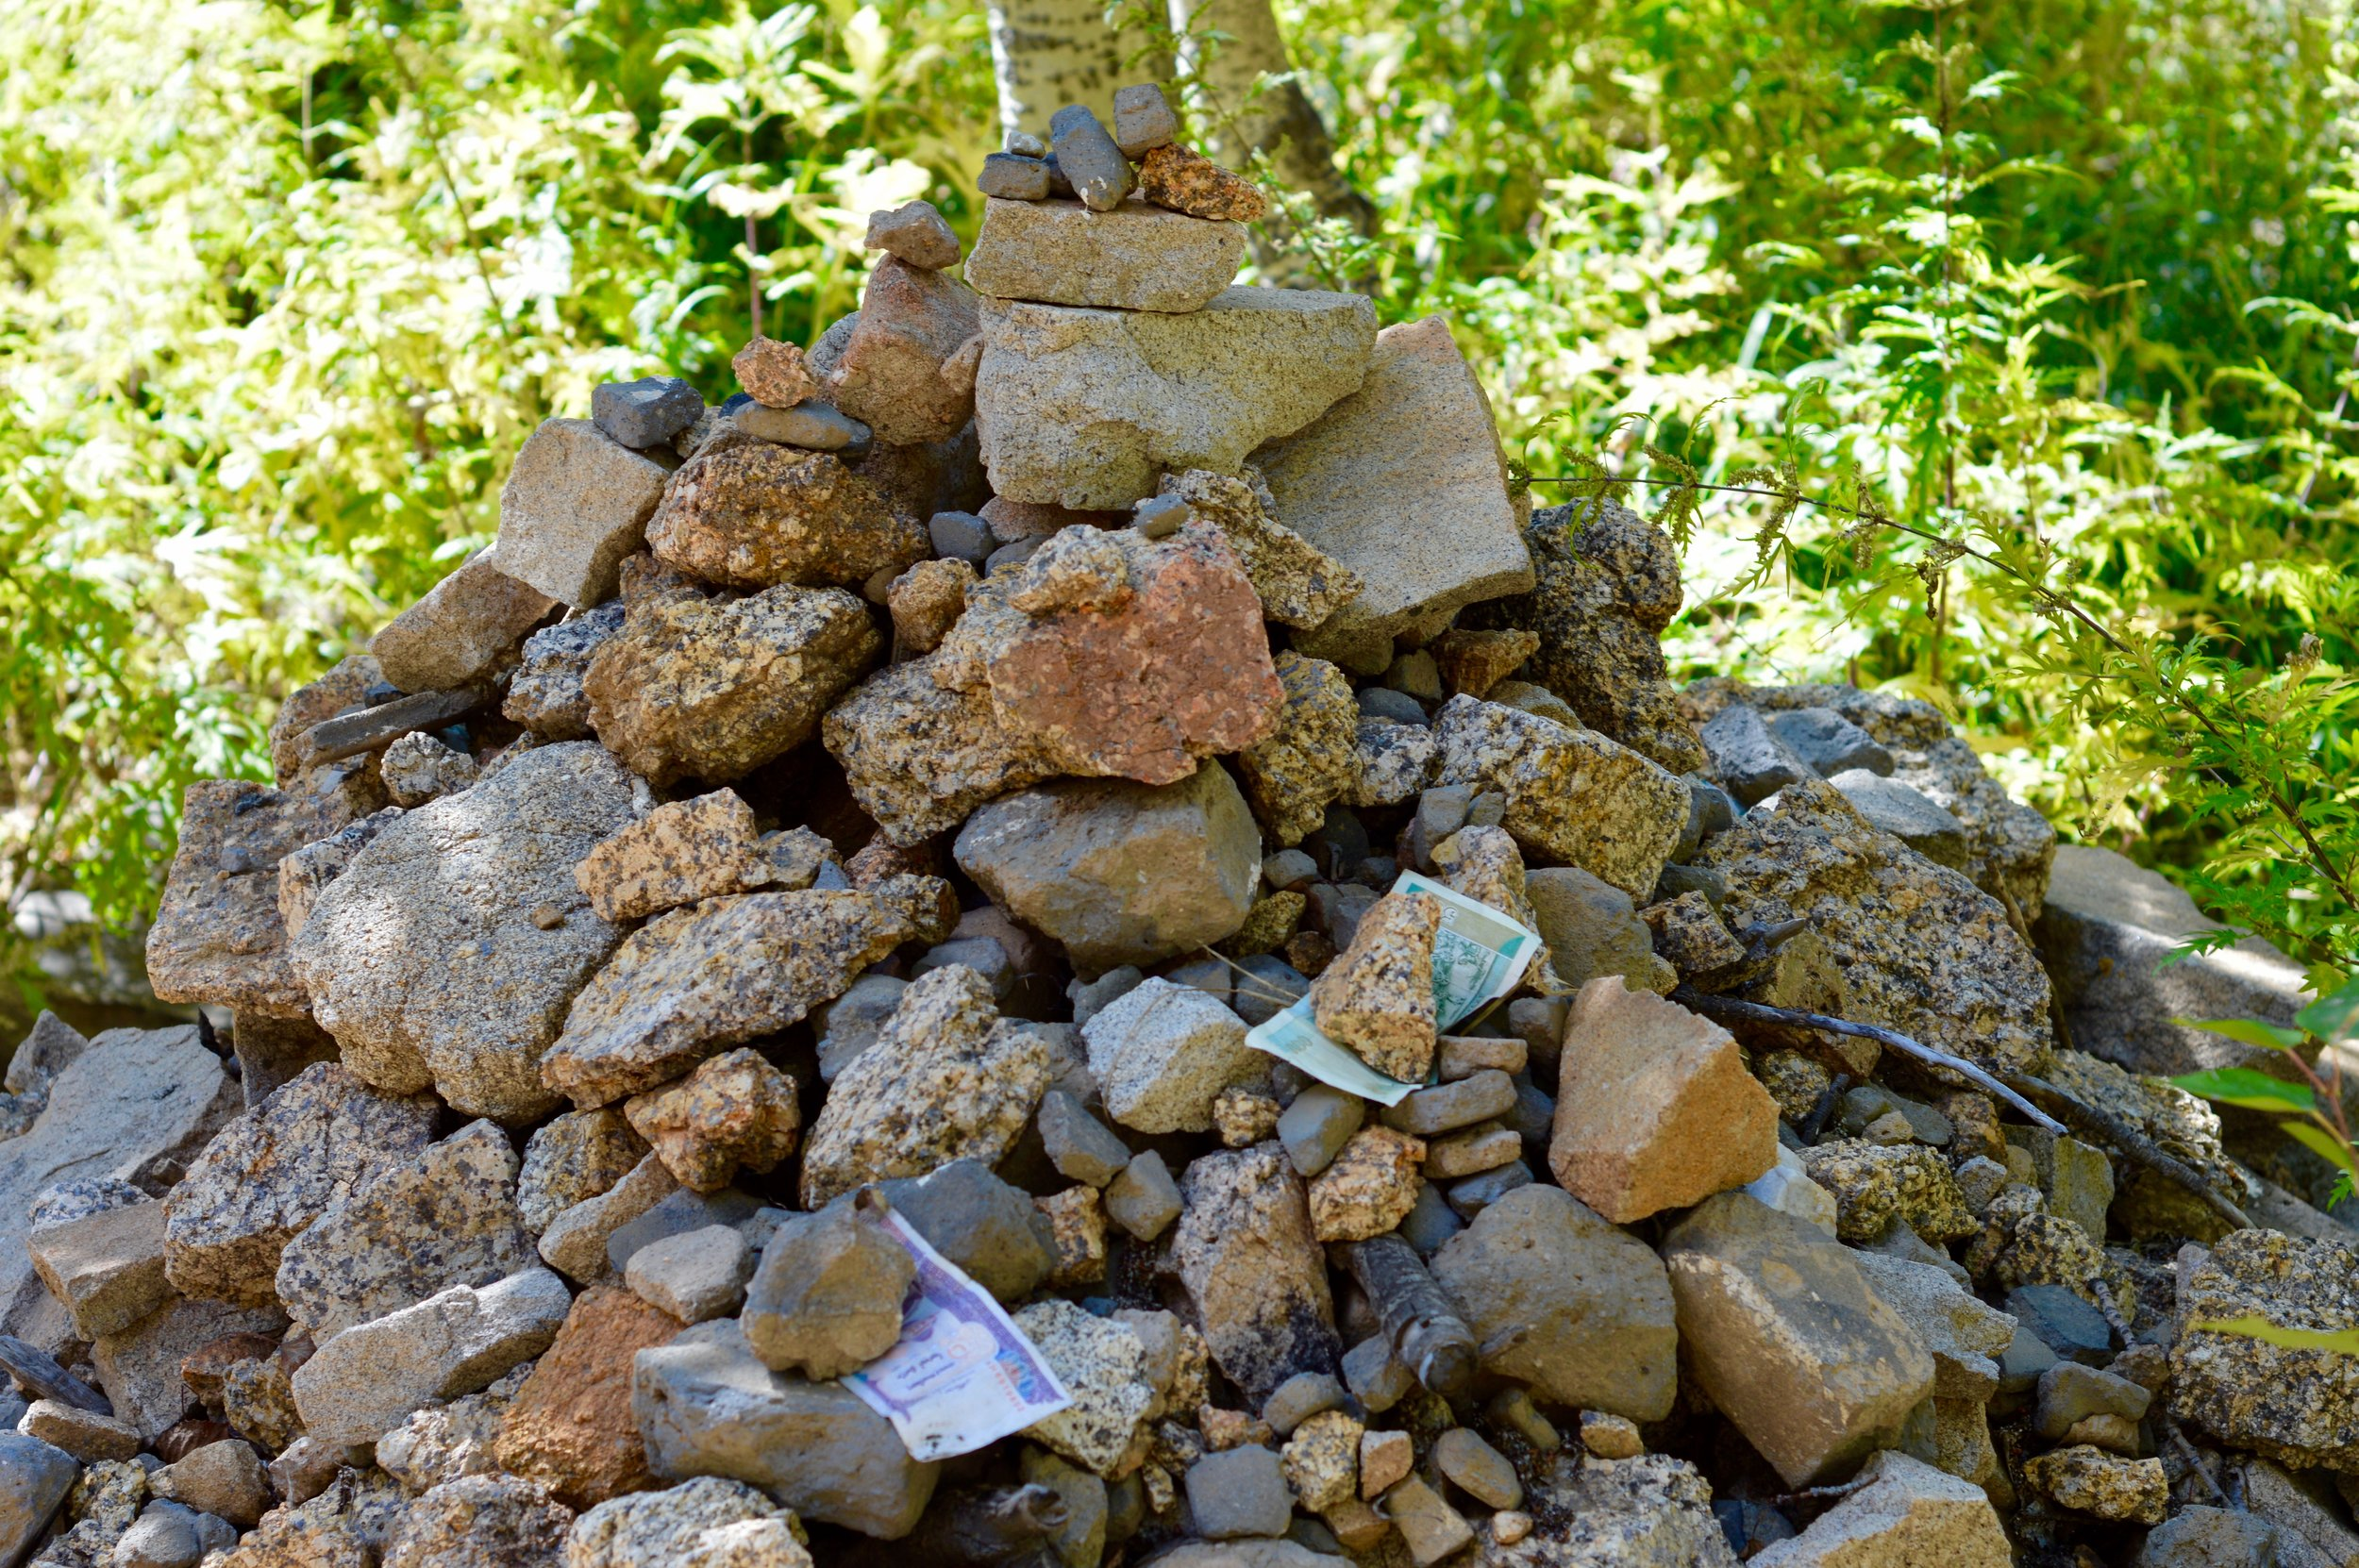 An ovoo - a sacred stack of rocks